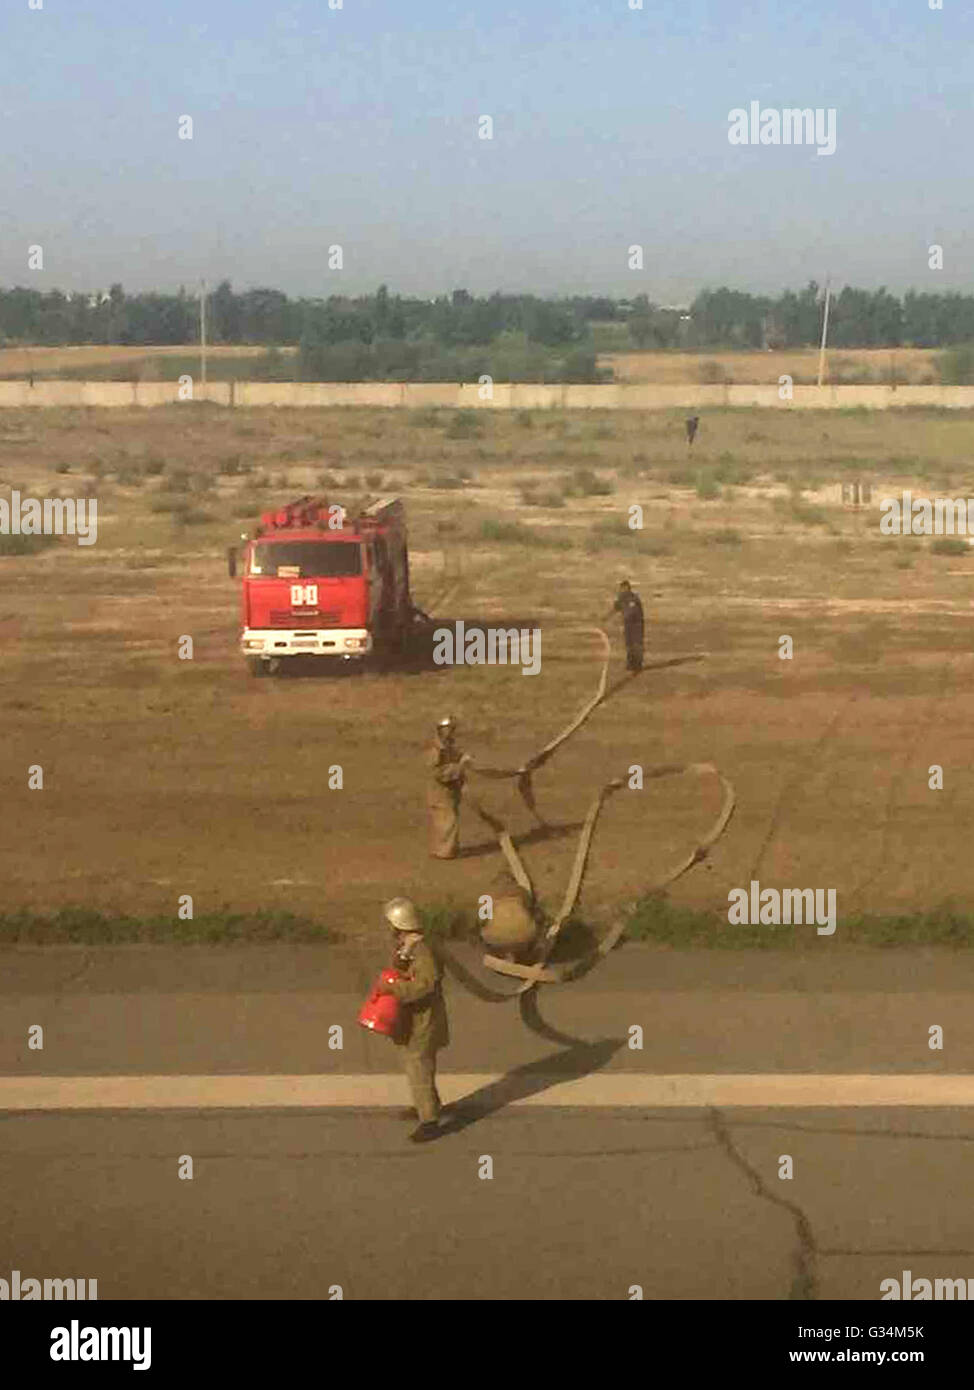 Uzbekistan. 8th June, 2016. Firemen work at the airport where the Egyptair plane made an emergency landing in Uzbekistan - Stock Image